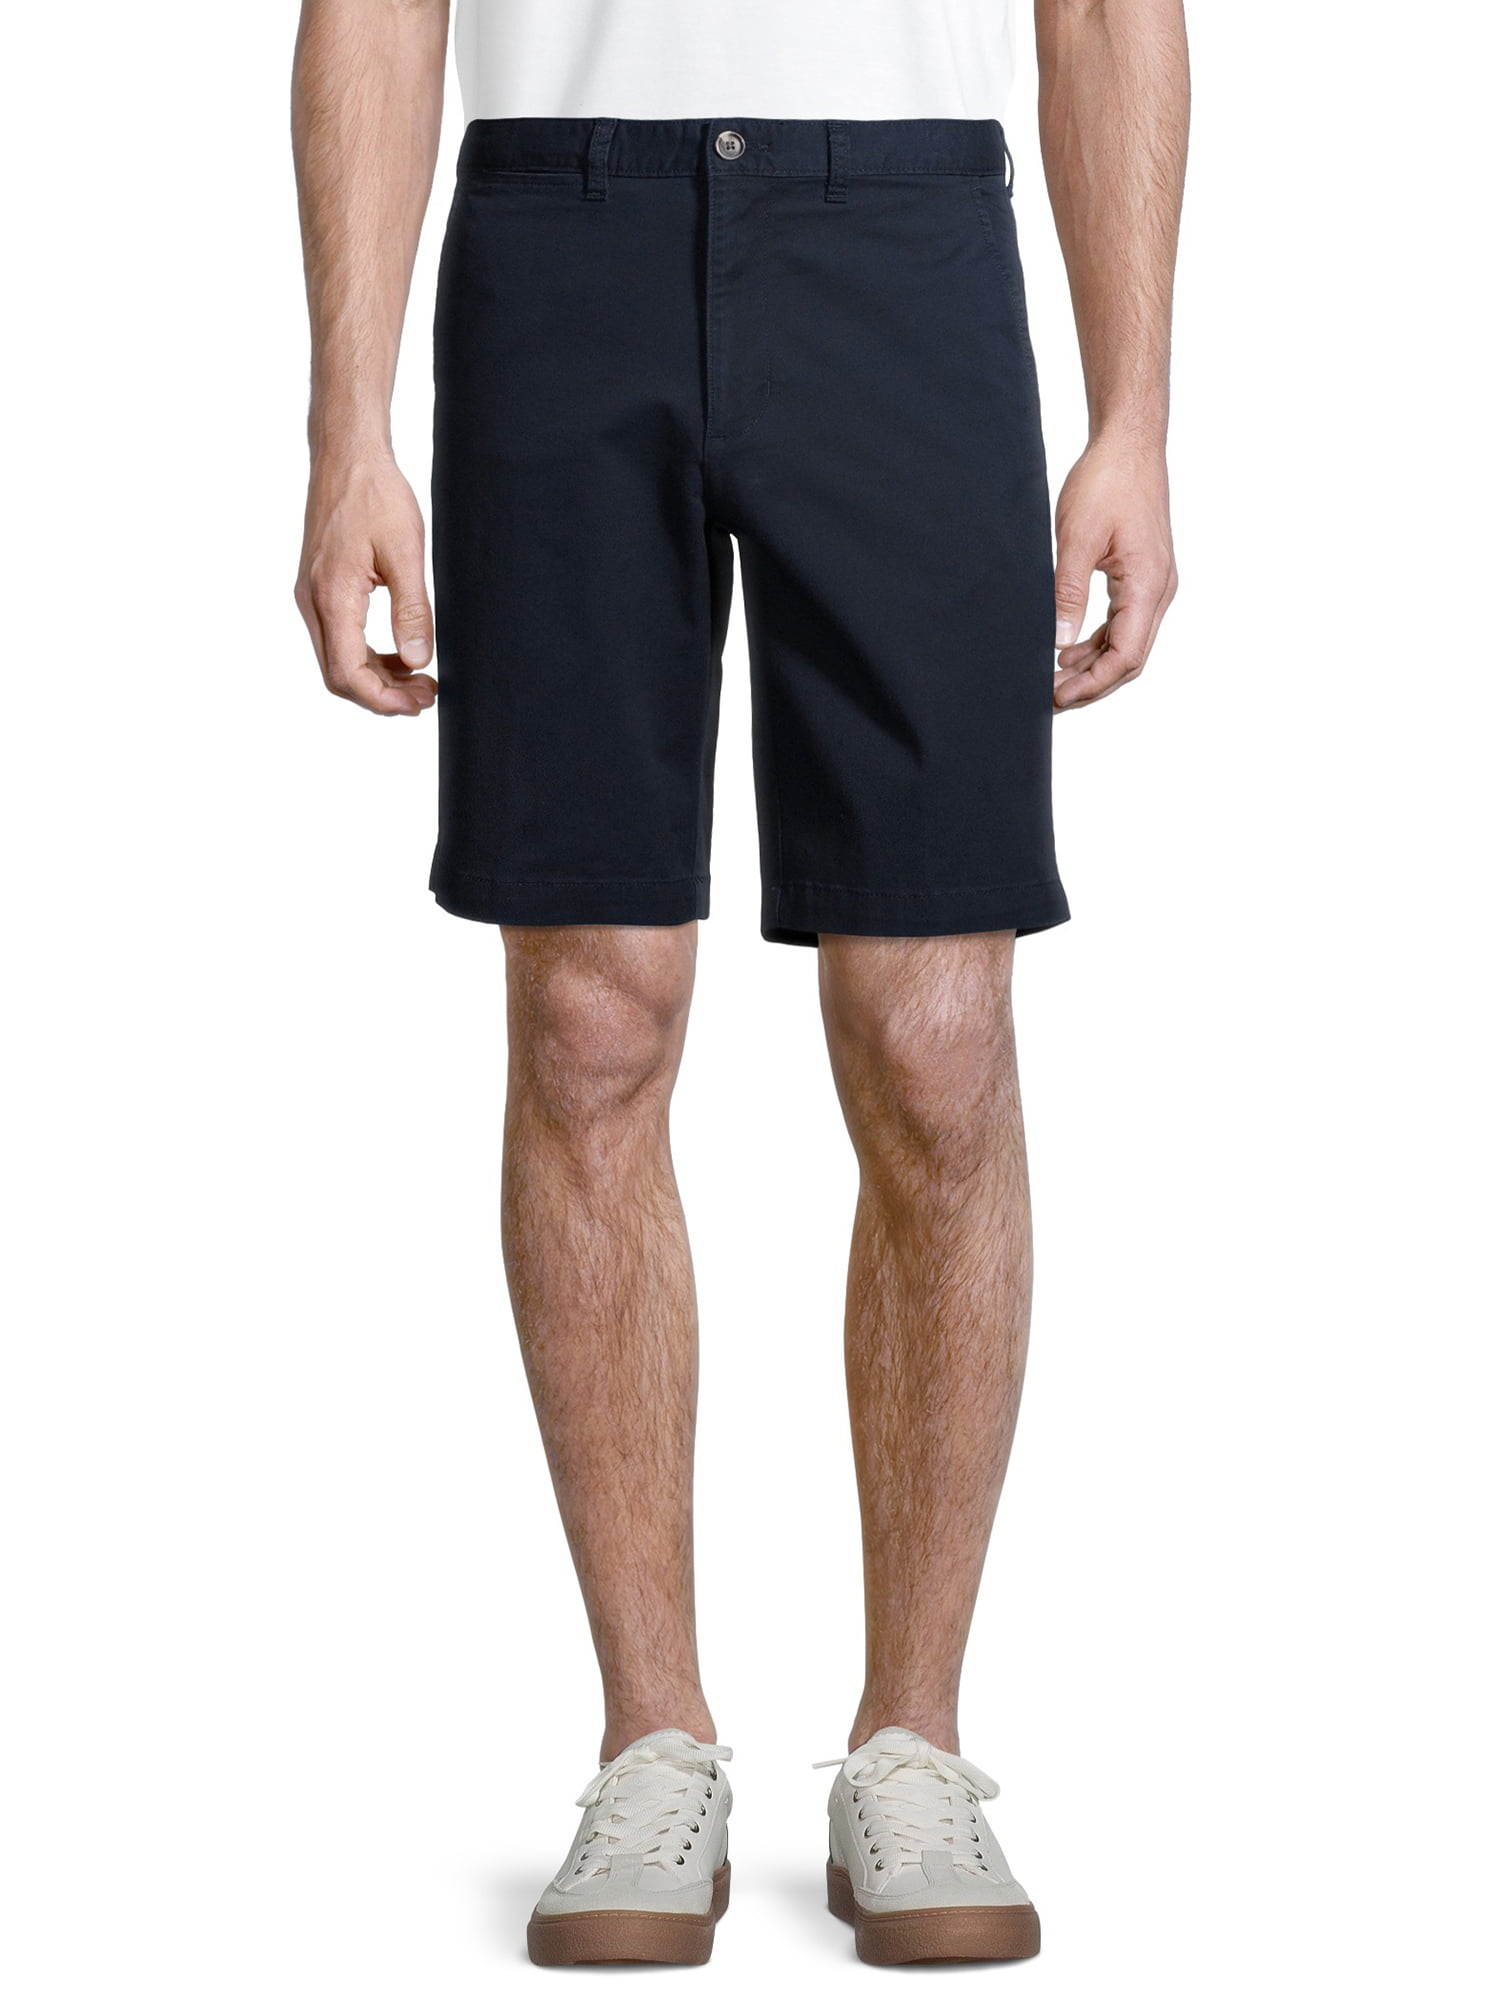 MEN/'S GEORGE SIZE 38 STRETCH FLAT FRONT SHORTS ABOVE THE KNEE  WITH FLAMINGOS